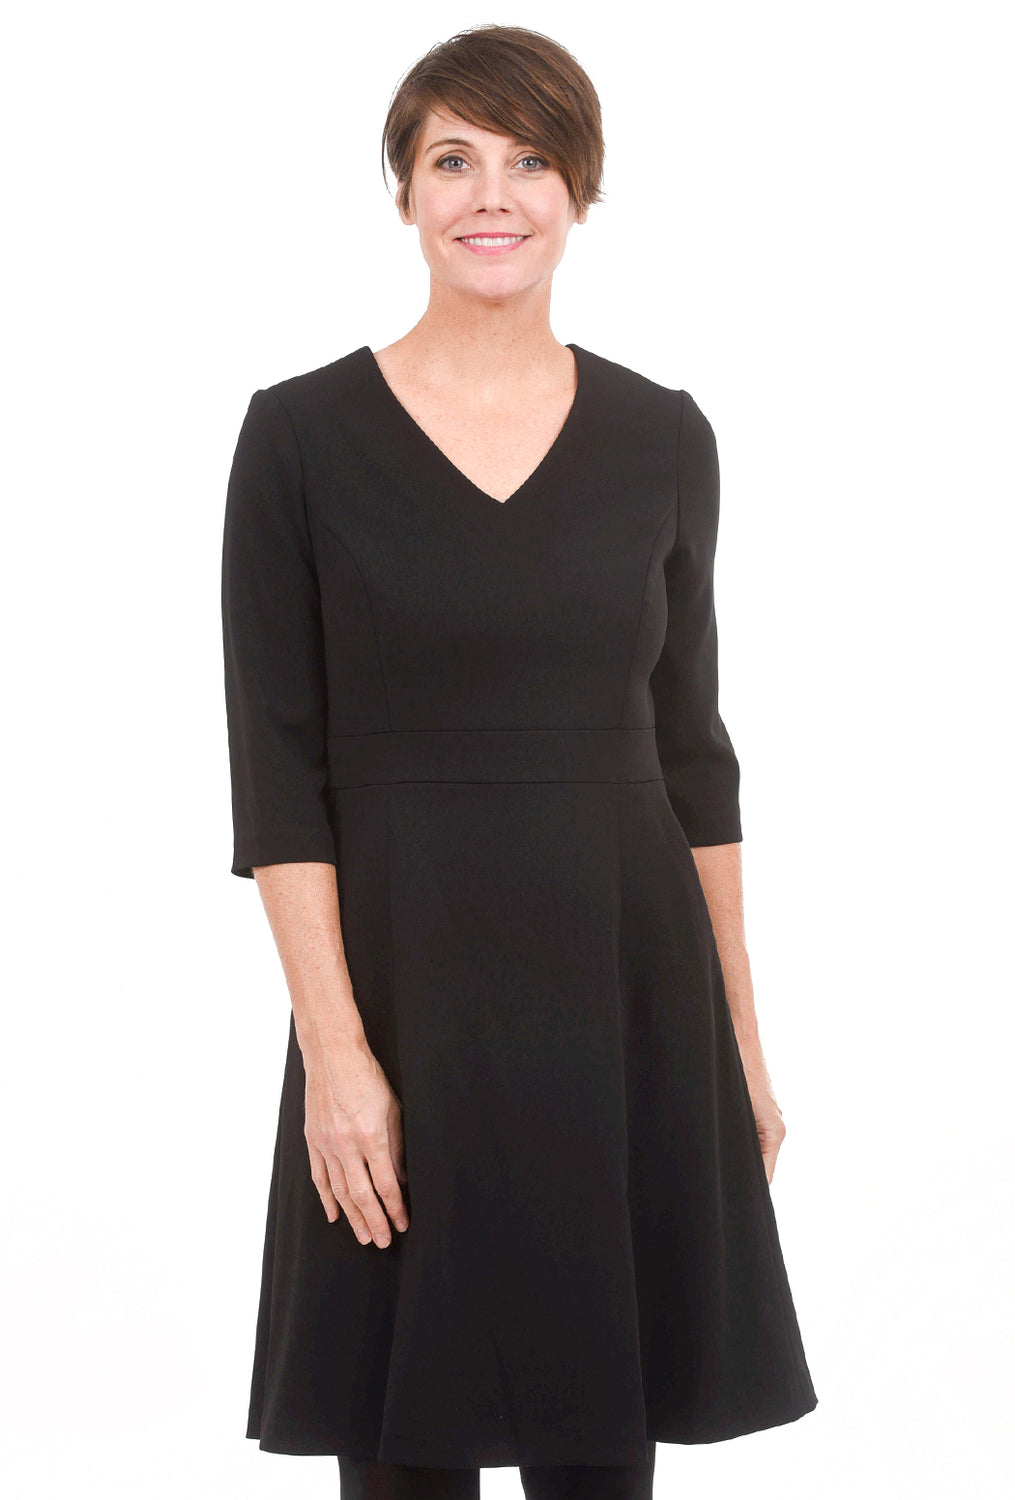 Nora Gardner Alexandra Dress, Black